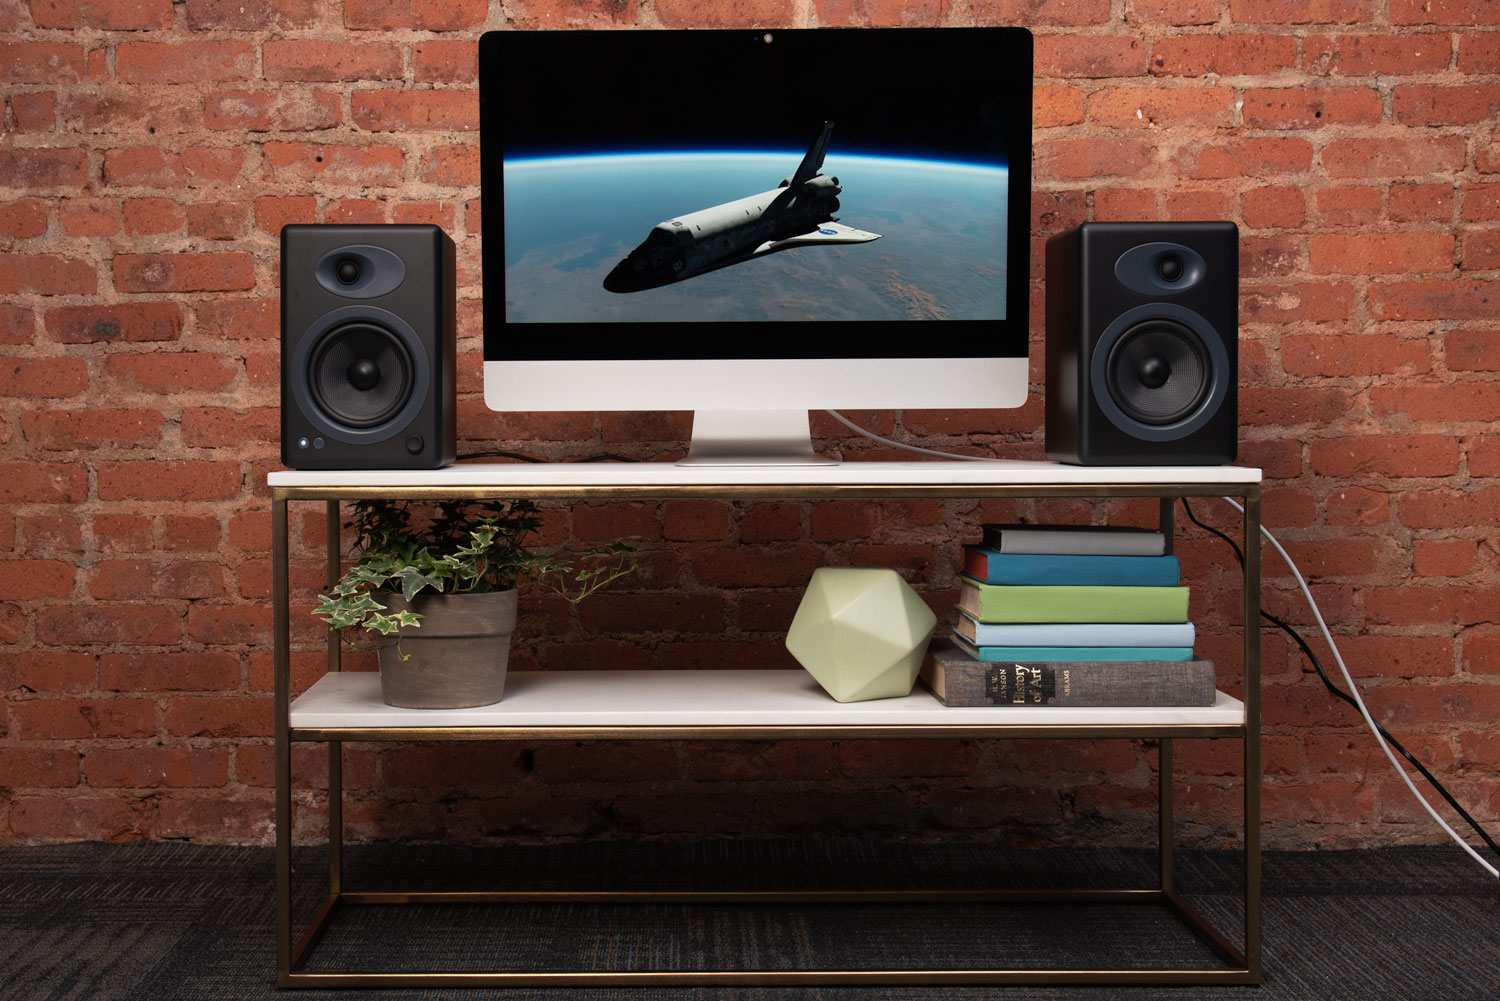 The 10 Best Computer Speakers of 2019